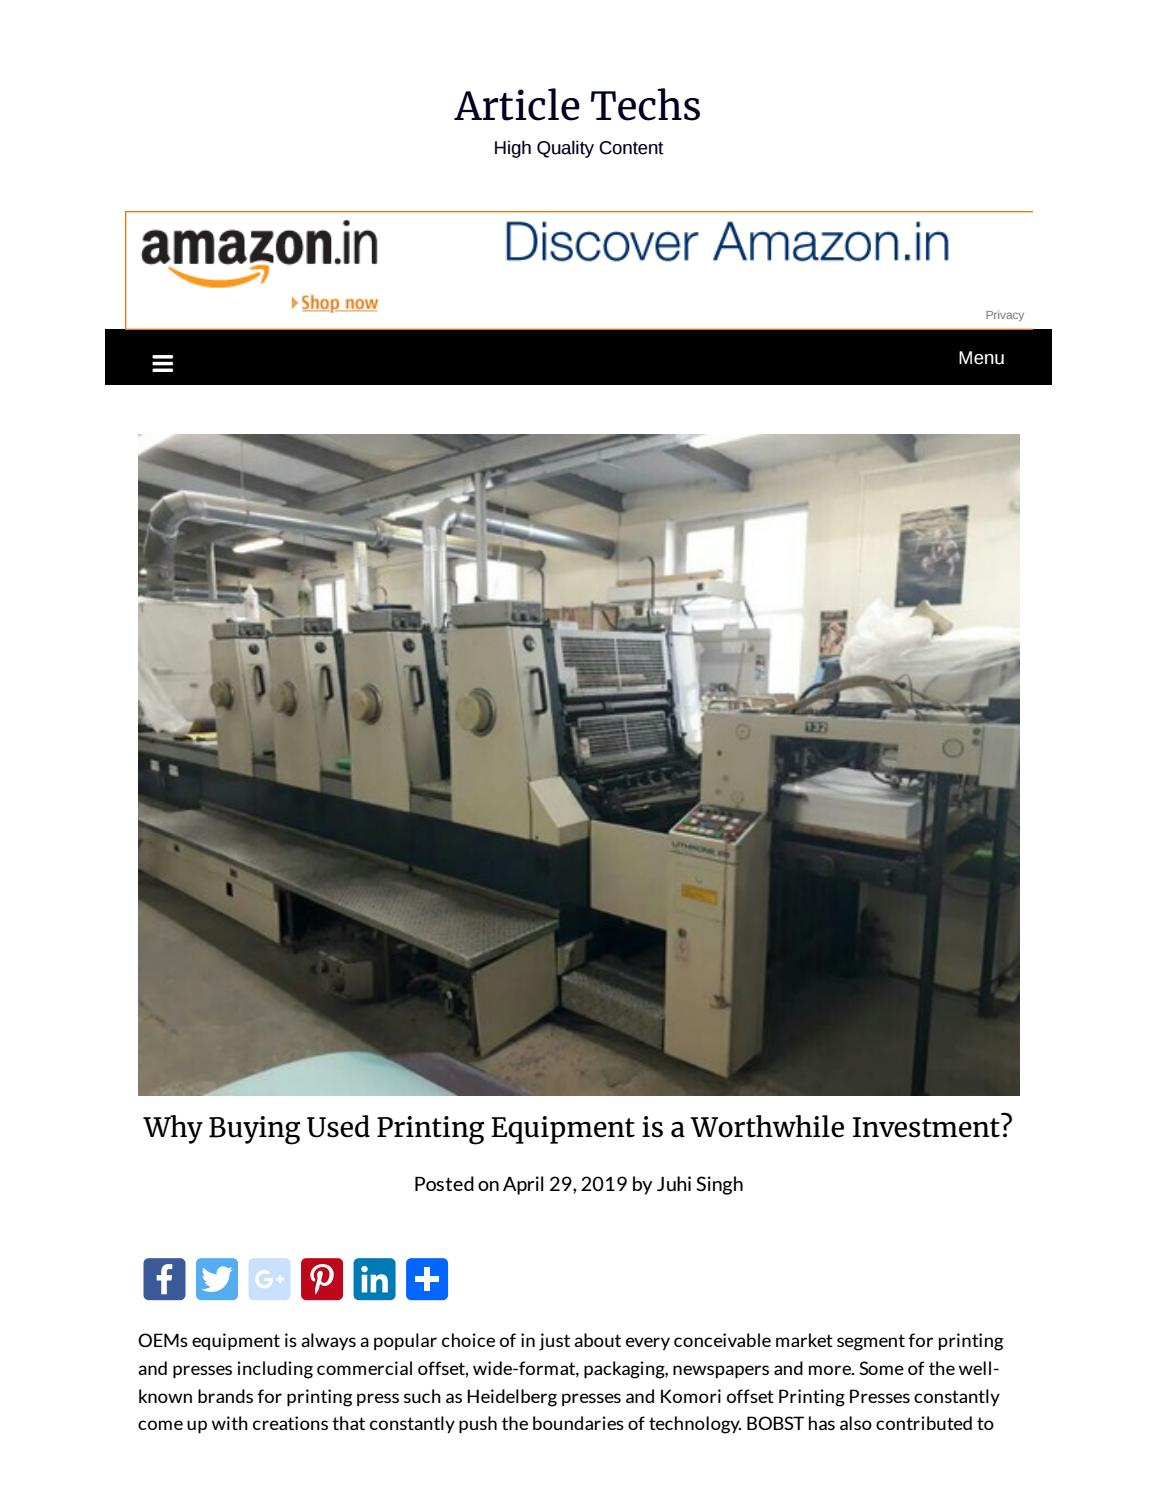 Why Buying Used Printing Equipment is a Worthwhile